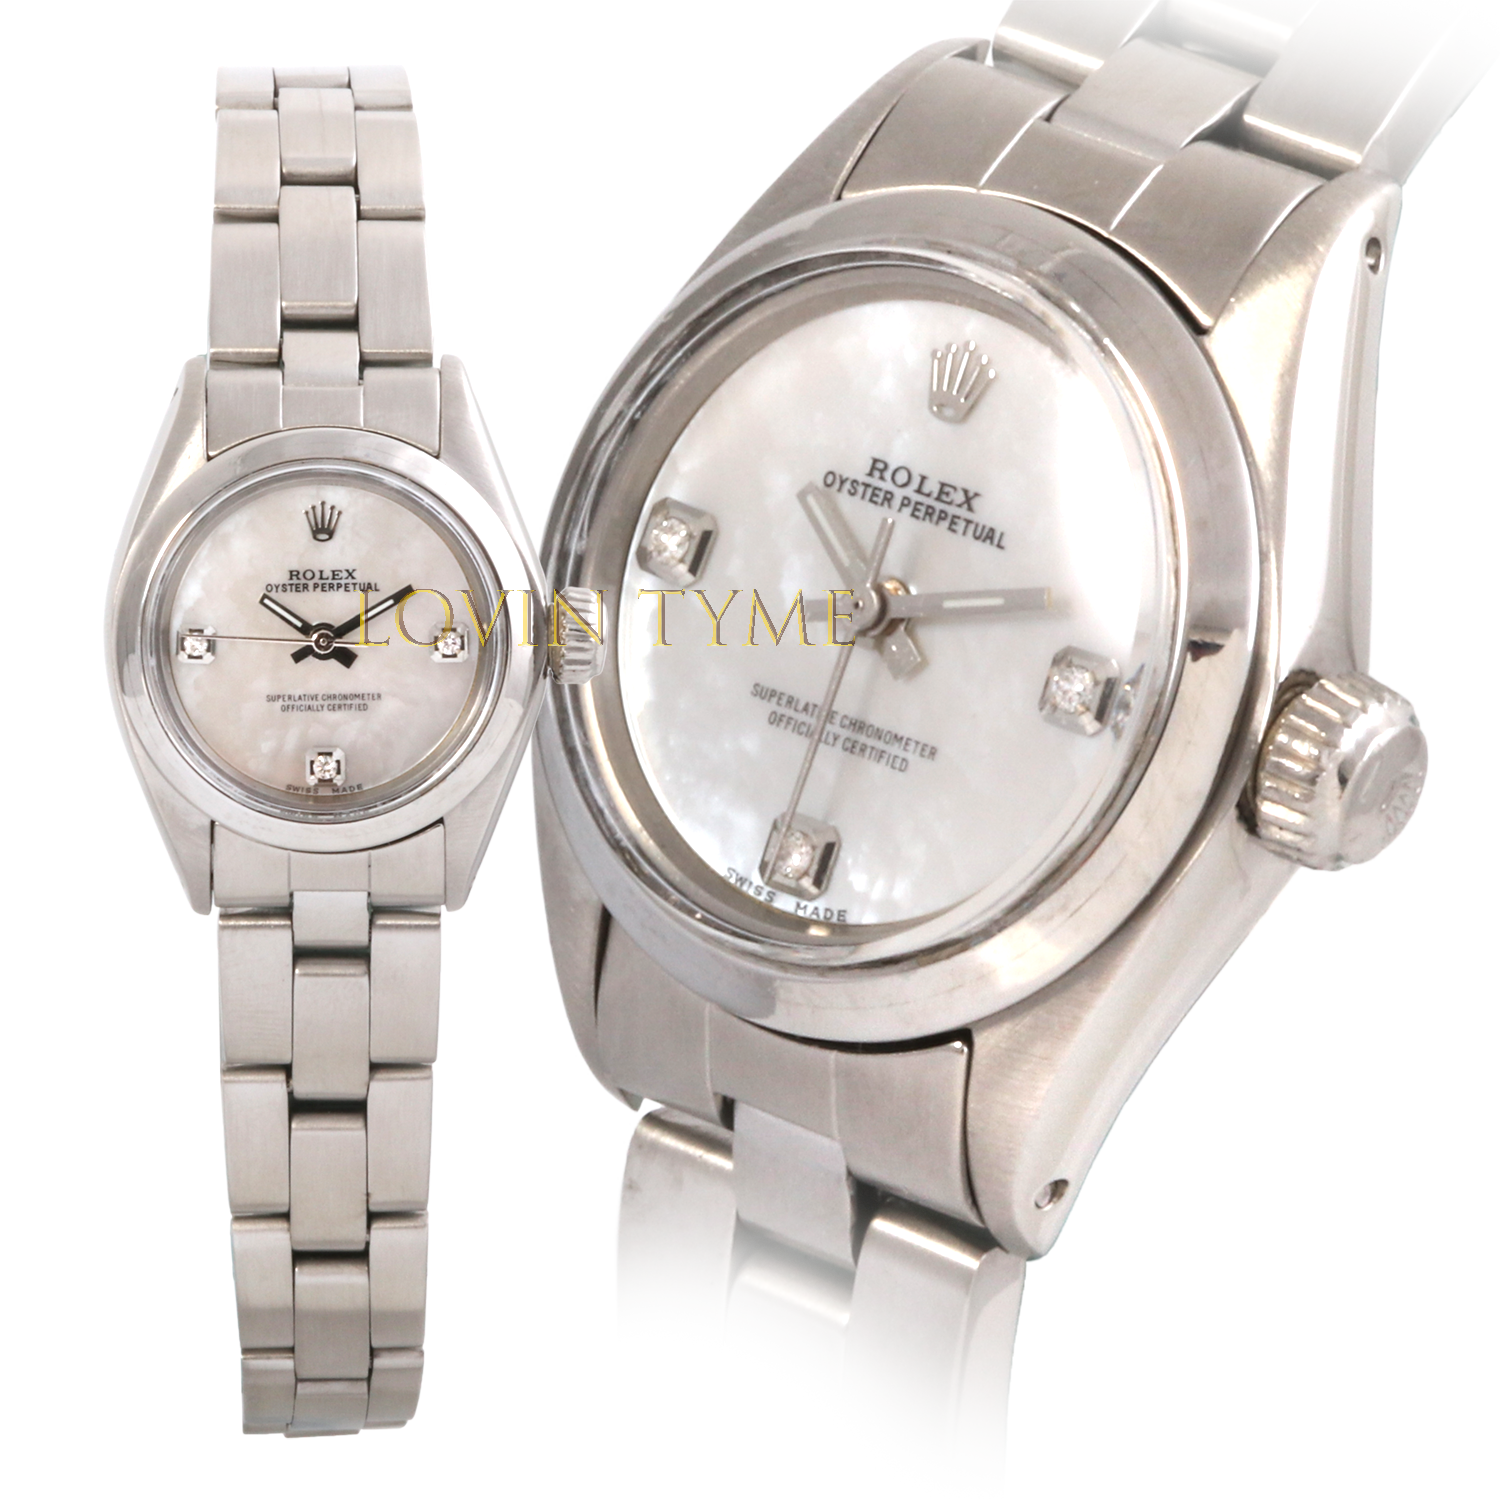 Rolex Ladies Stainless Steel Oyster Perpetual - Custom Mother of Pearl 3 Stone Diamond Dial - Smooth Bezel